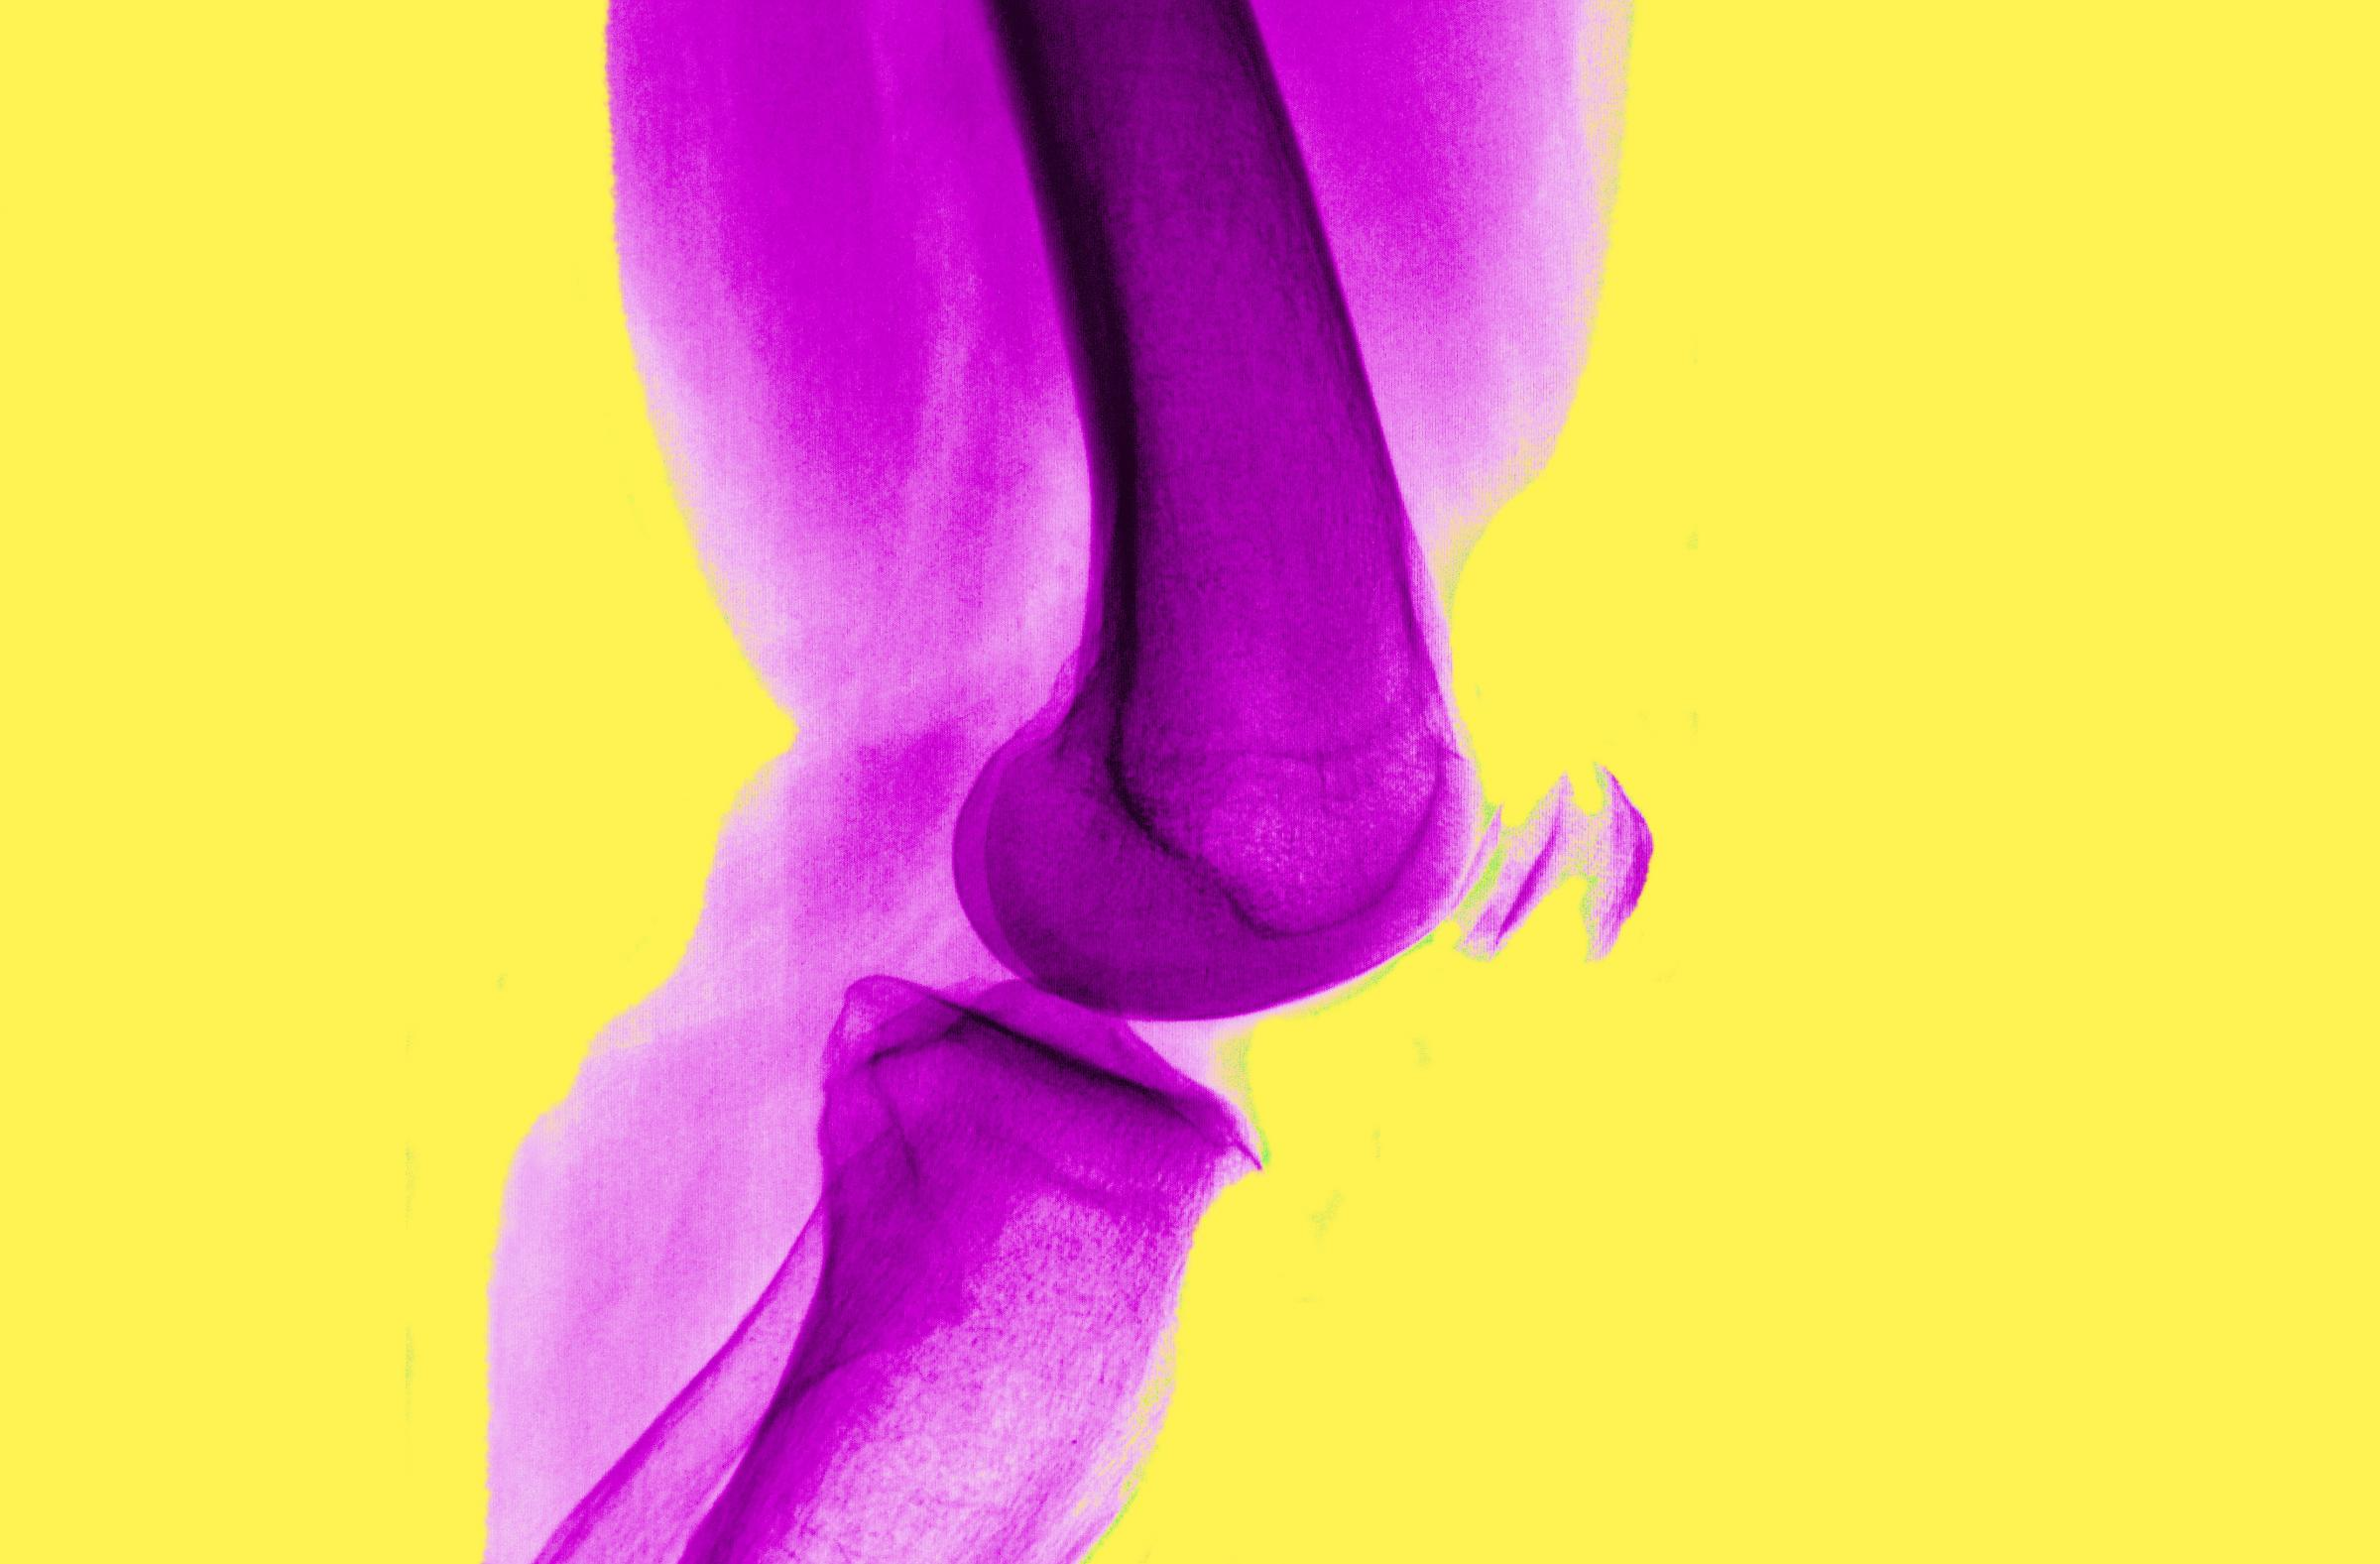 Experts say no to surgery for arthritic knees